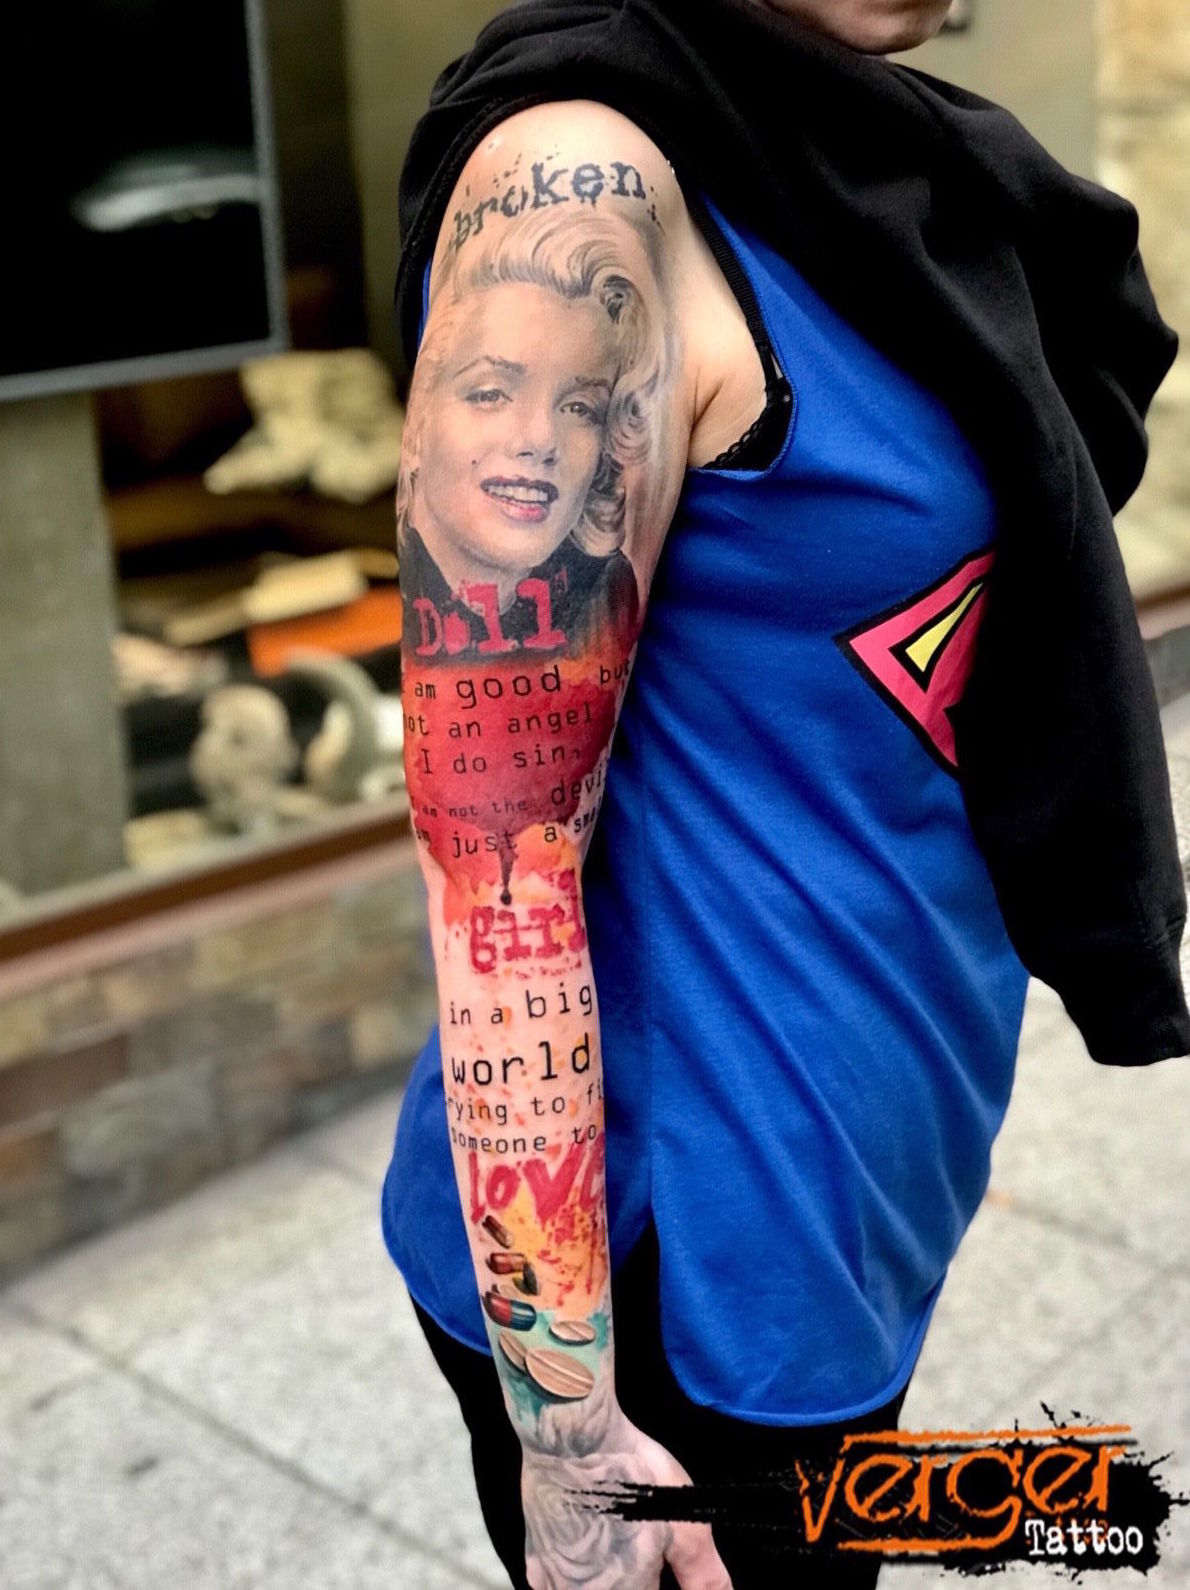 Full sleeve tattoo. Retrato realista Santander. Tatuaje a color Santander. Marylin Tattoo. Verger Tattoo. JR Verger